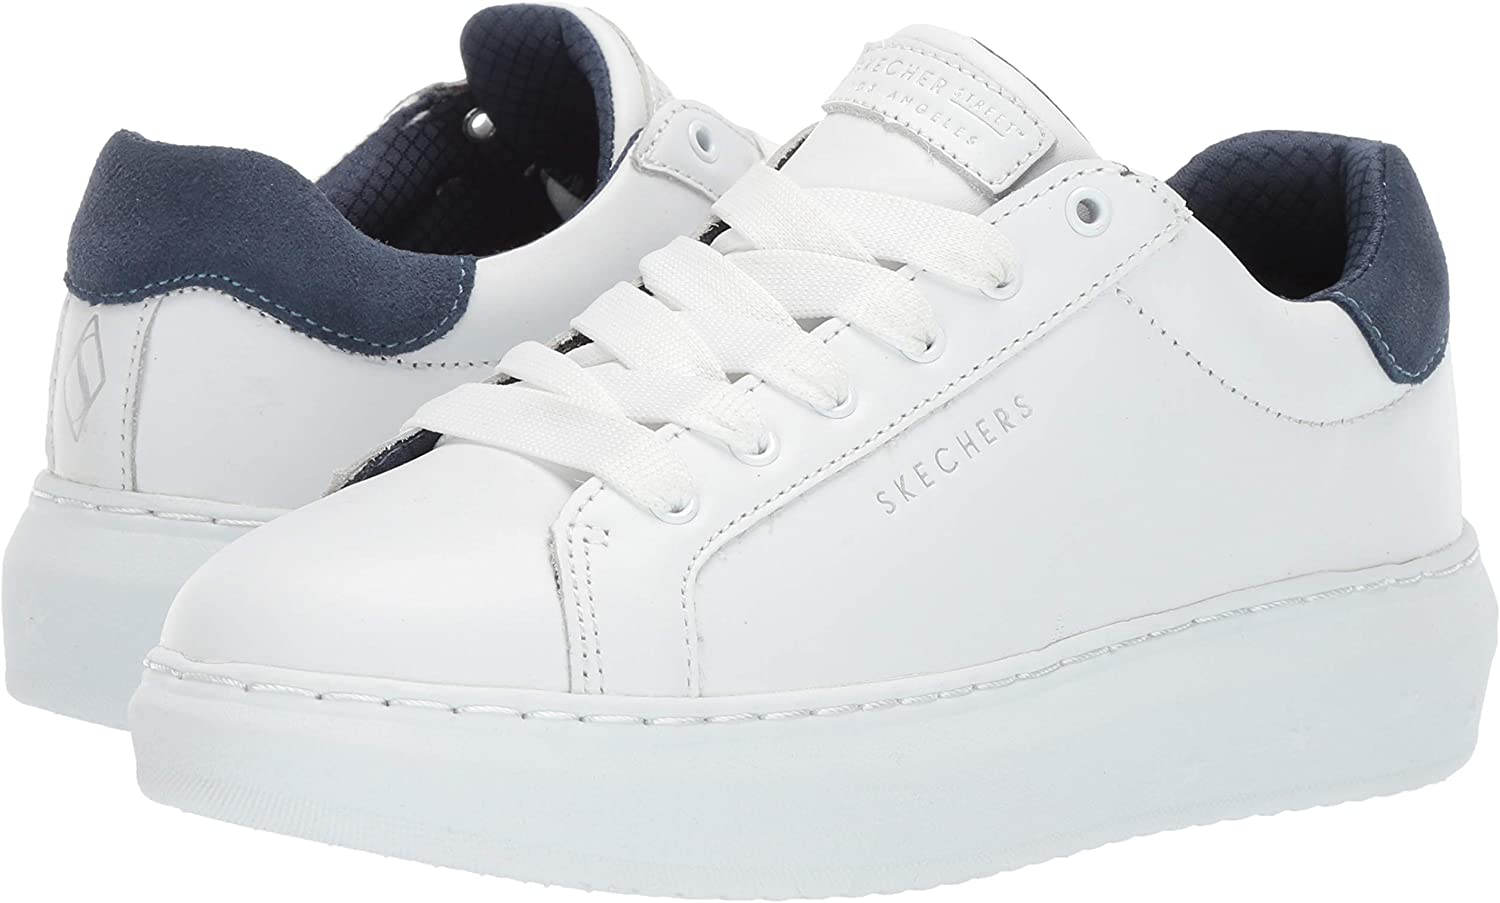 Skechers Womens High Street-Extremely Sole-ful Sneaker